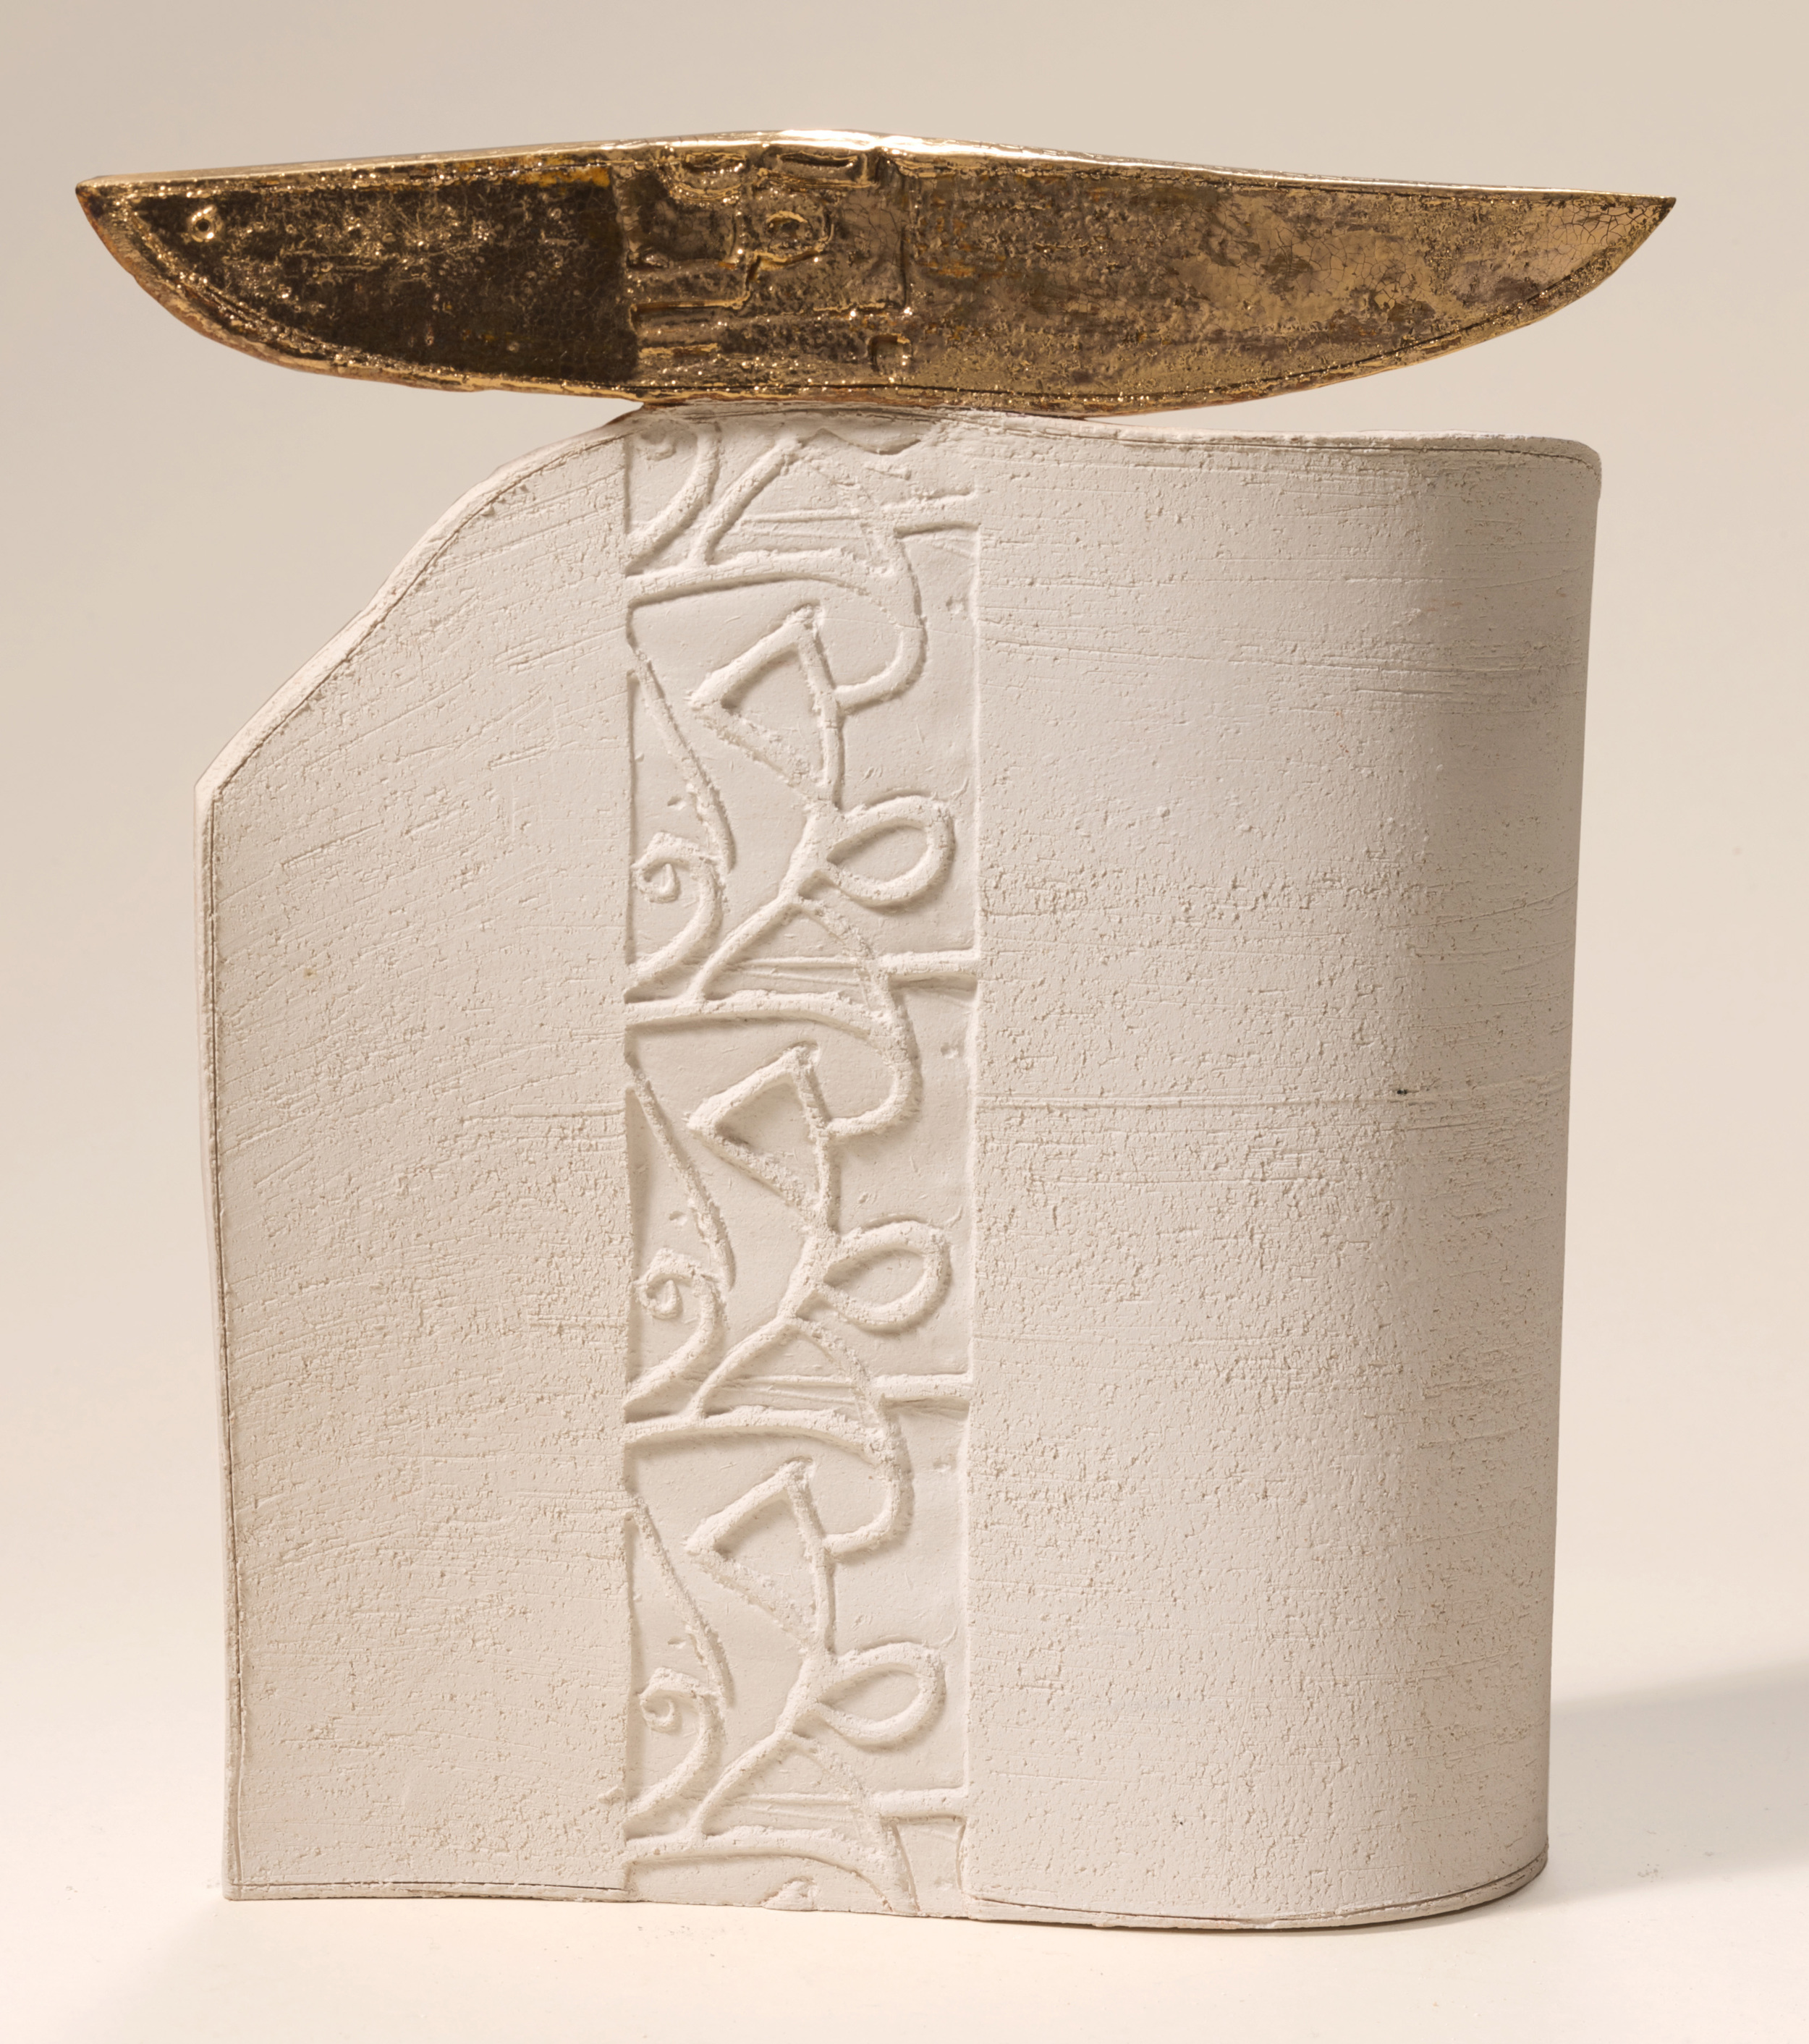 Golden Boat   Earthstone and gold 27x35cm 2008 Private Collection UK